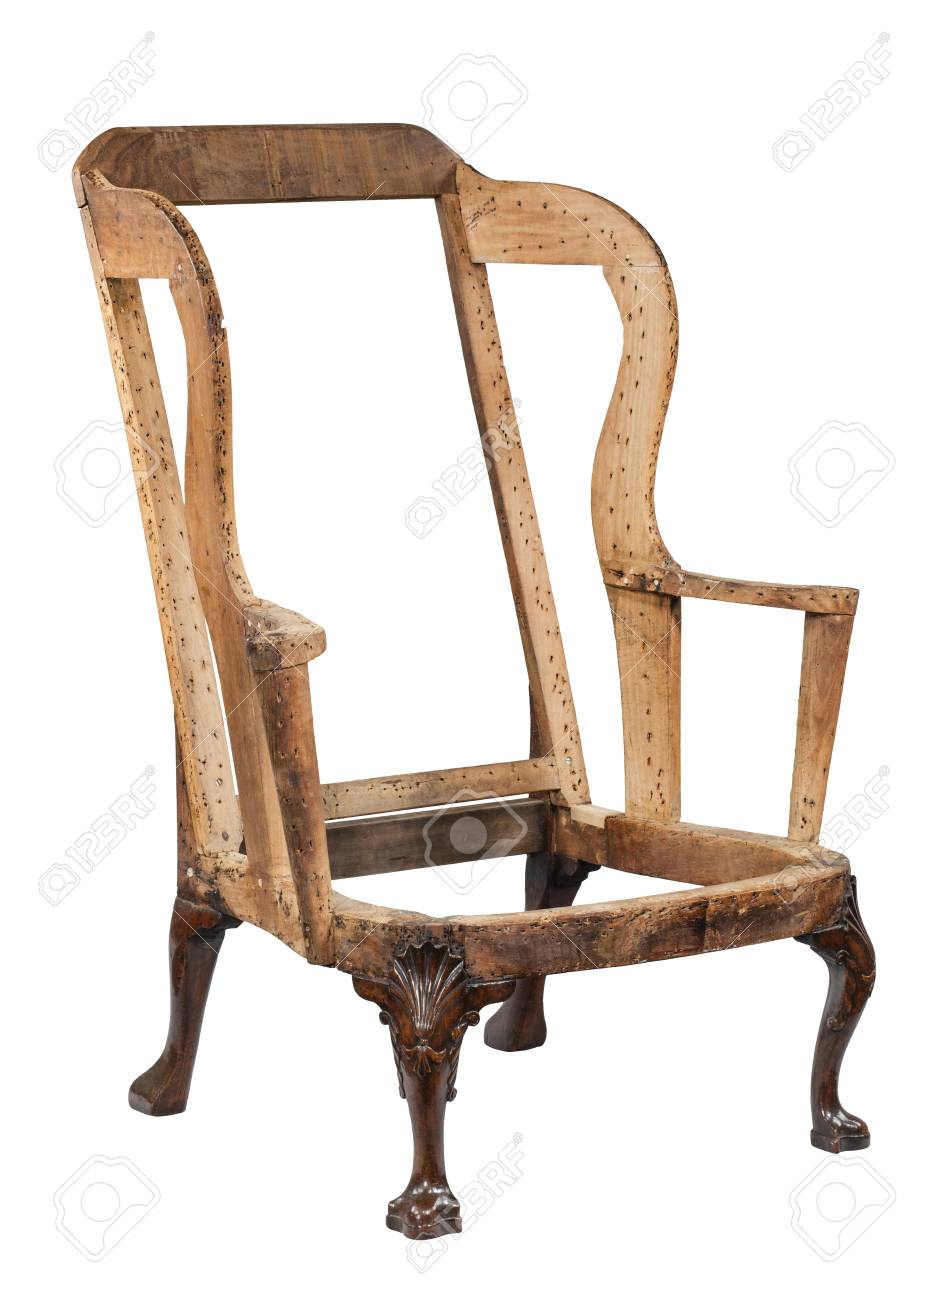 original stripped down before restoration old antique arm chair isolated  with clipping path Stock Photo - - Original Stripped Down Before Restoration Old Antique Arm Chair